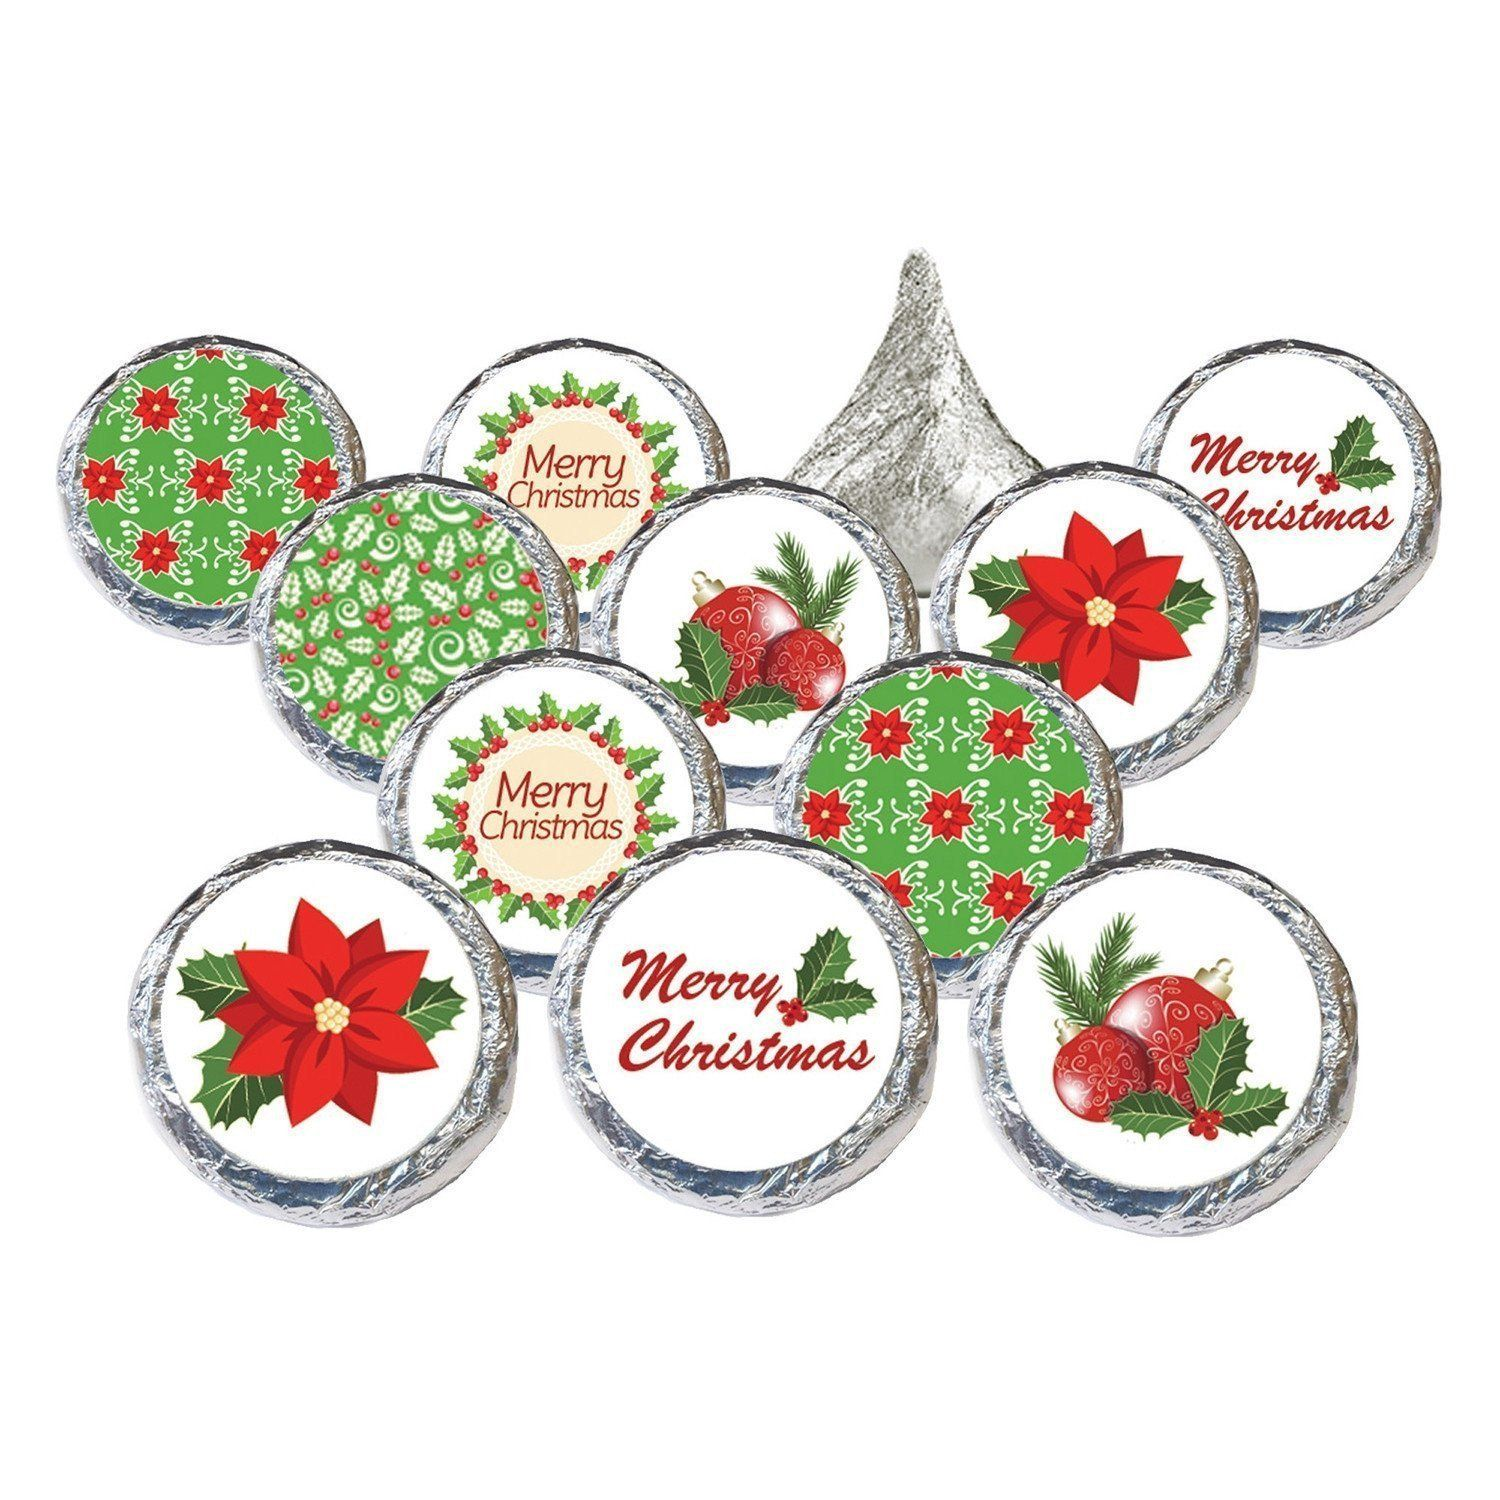 Vintage Christmas Stickers Set Of 324 Products Christmas Party Favors Christmas Stickers Christmas Party Invitations